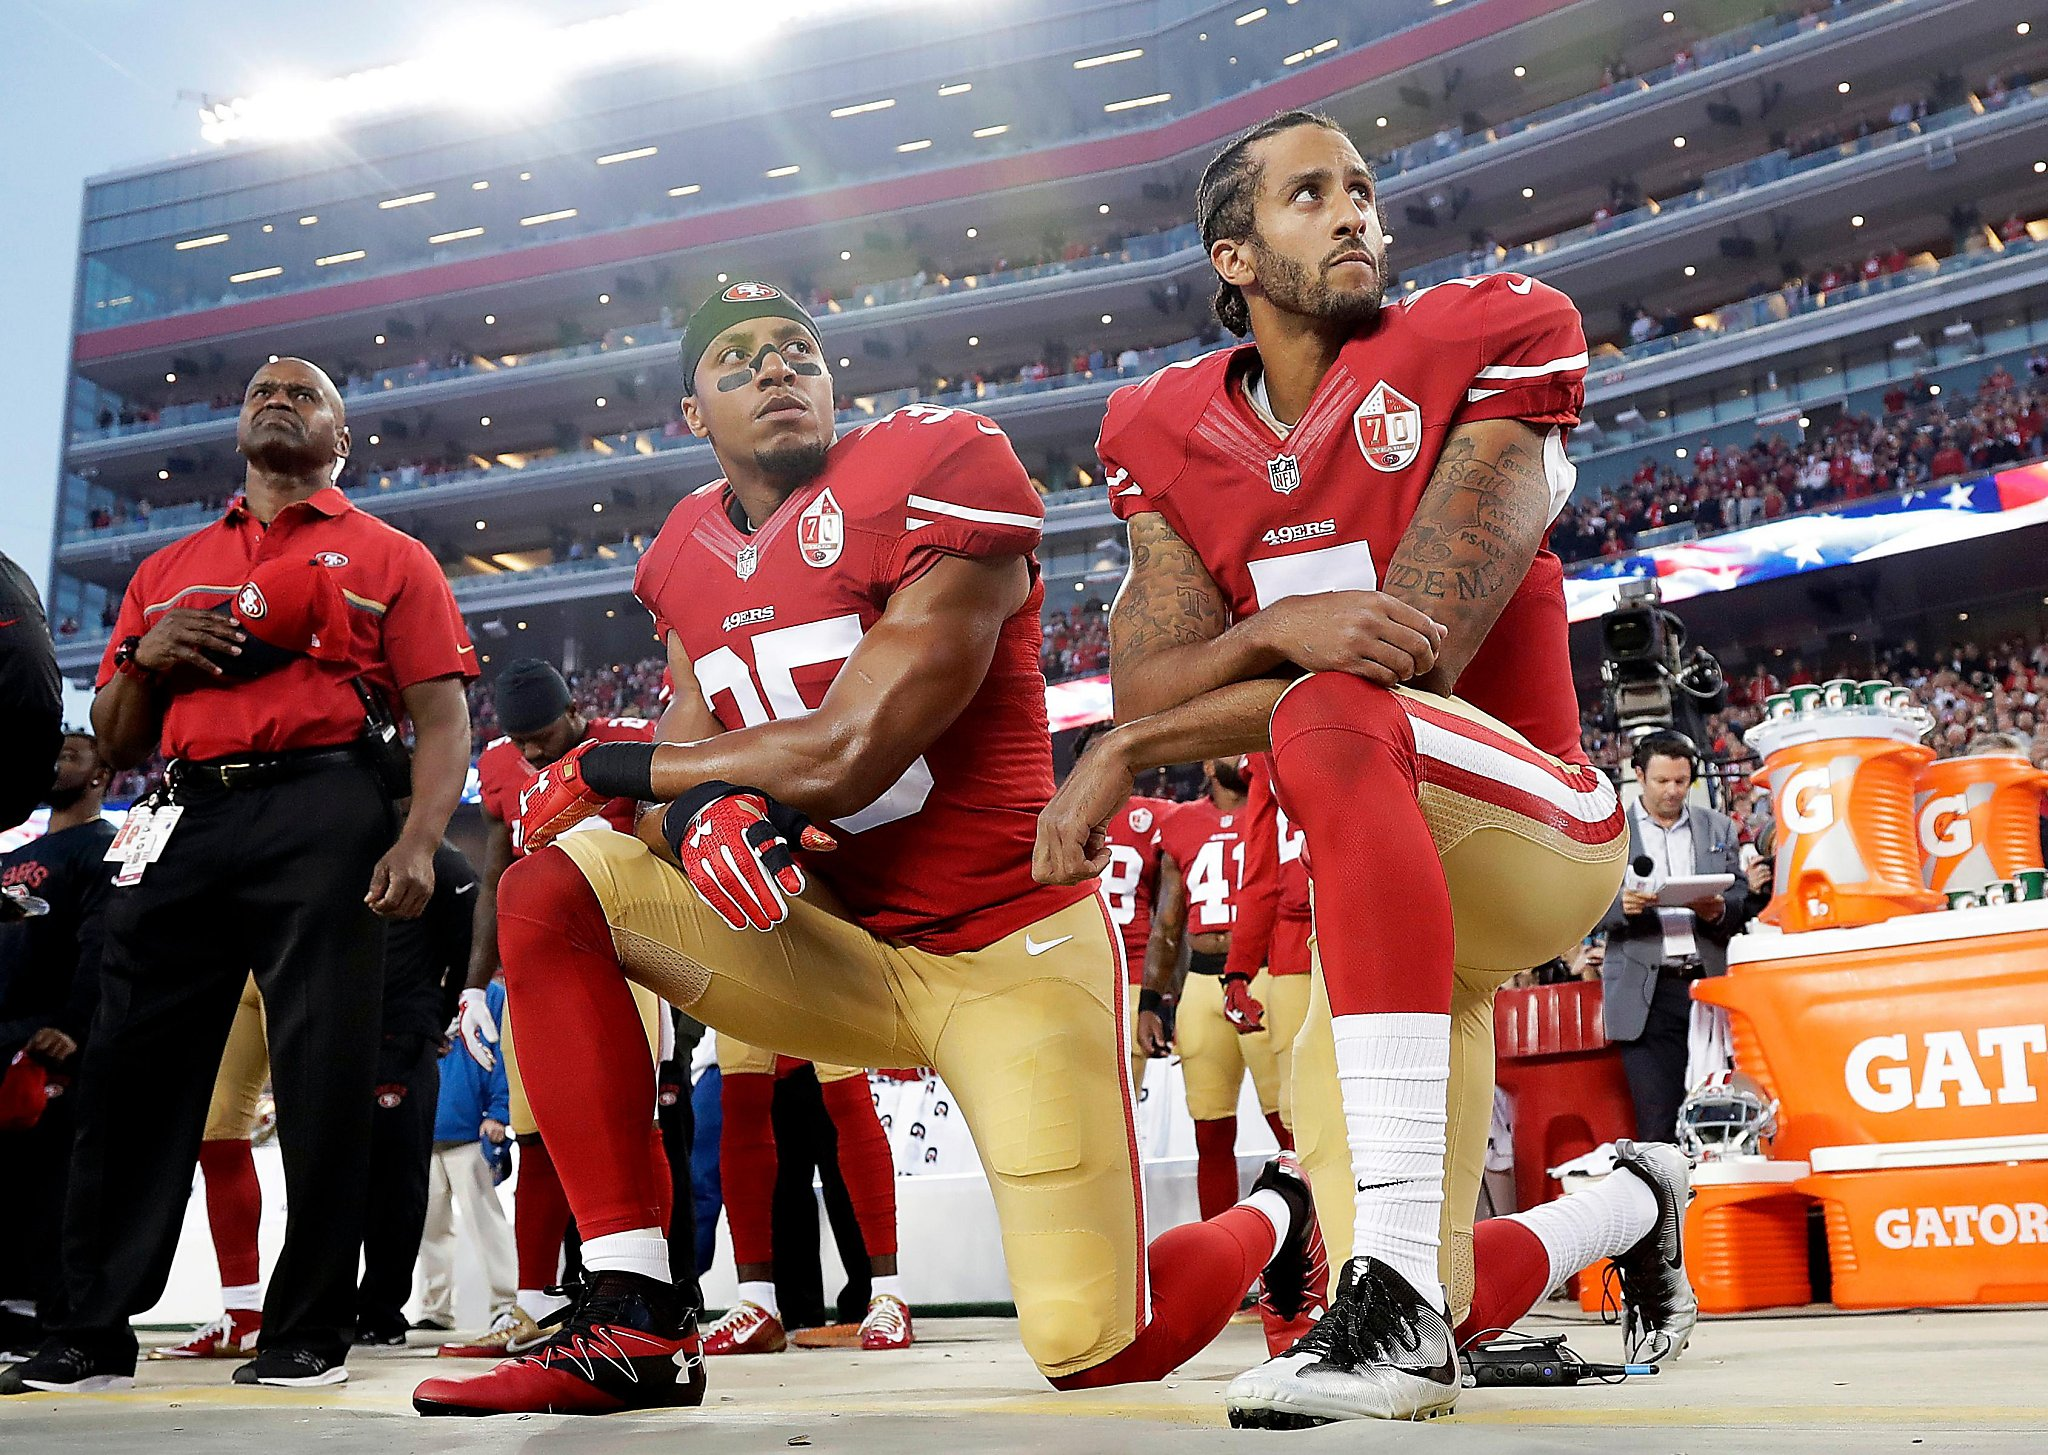 No Nfl Job But Colin Kaepernick Has Endorsement Deal With Nike